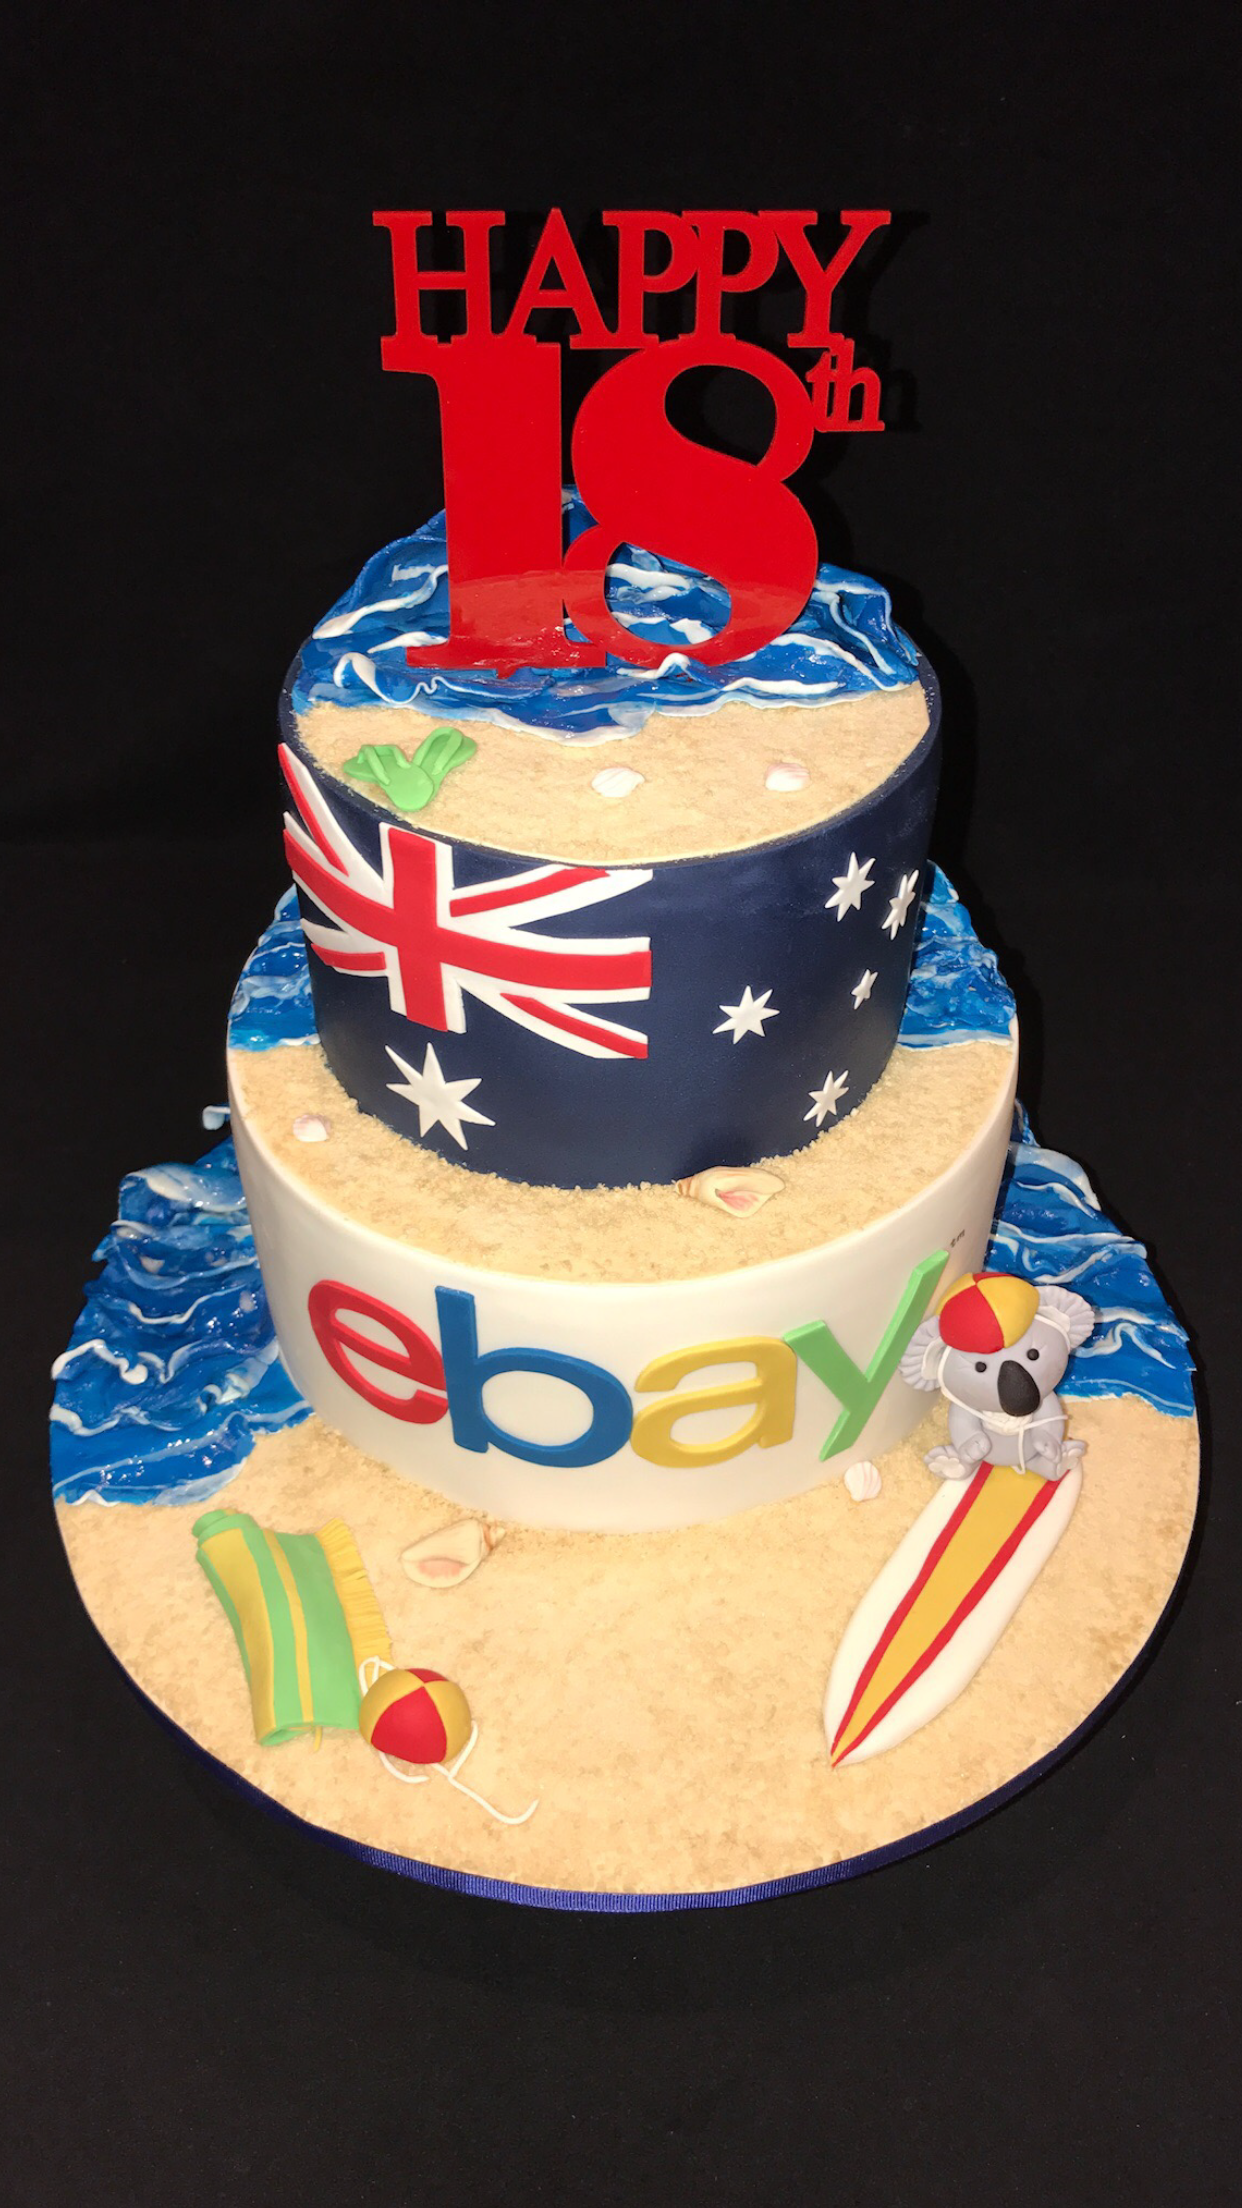 Ebay Cake If Youre Celebrating Being In Australia For 18 Yrs